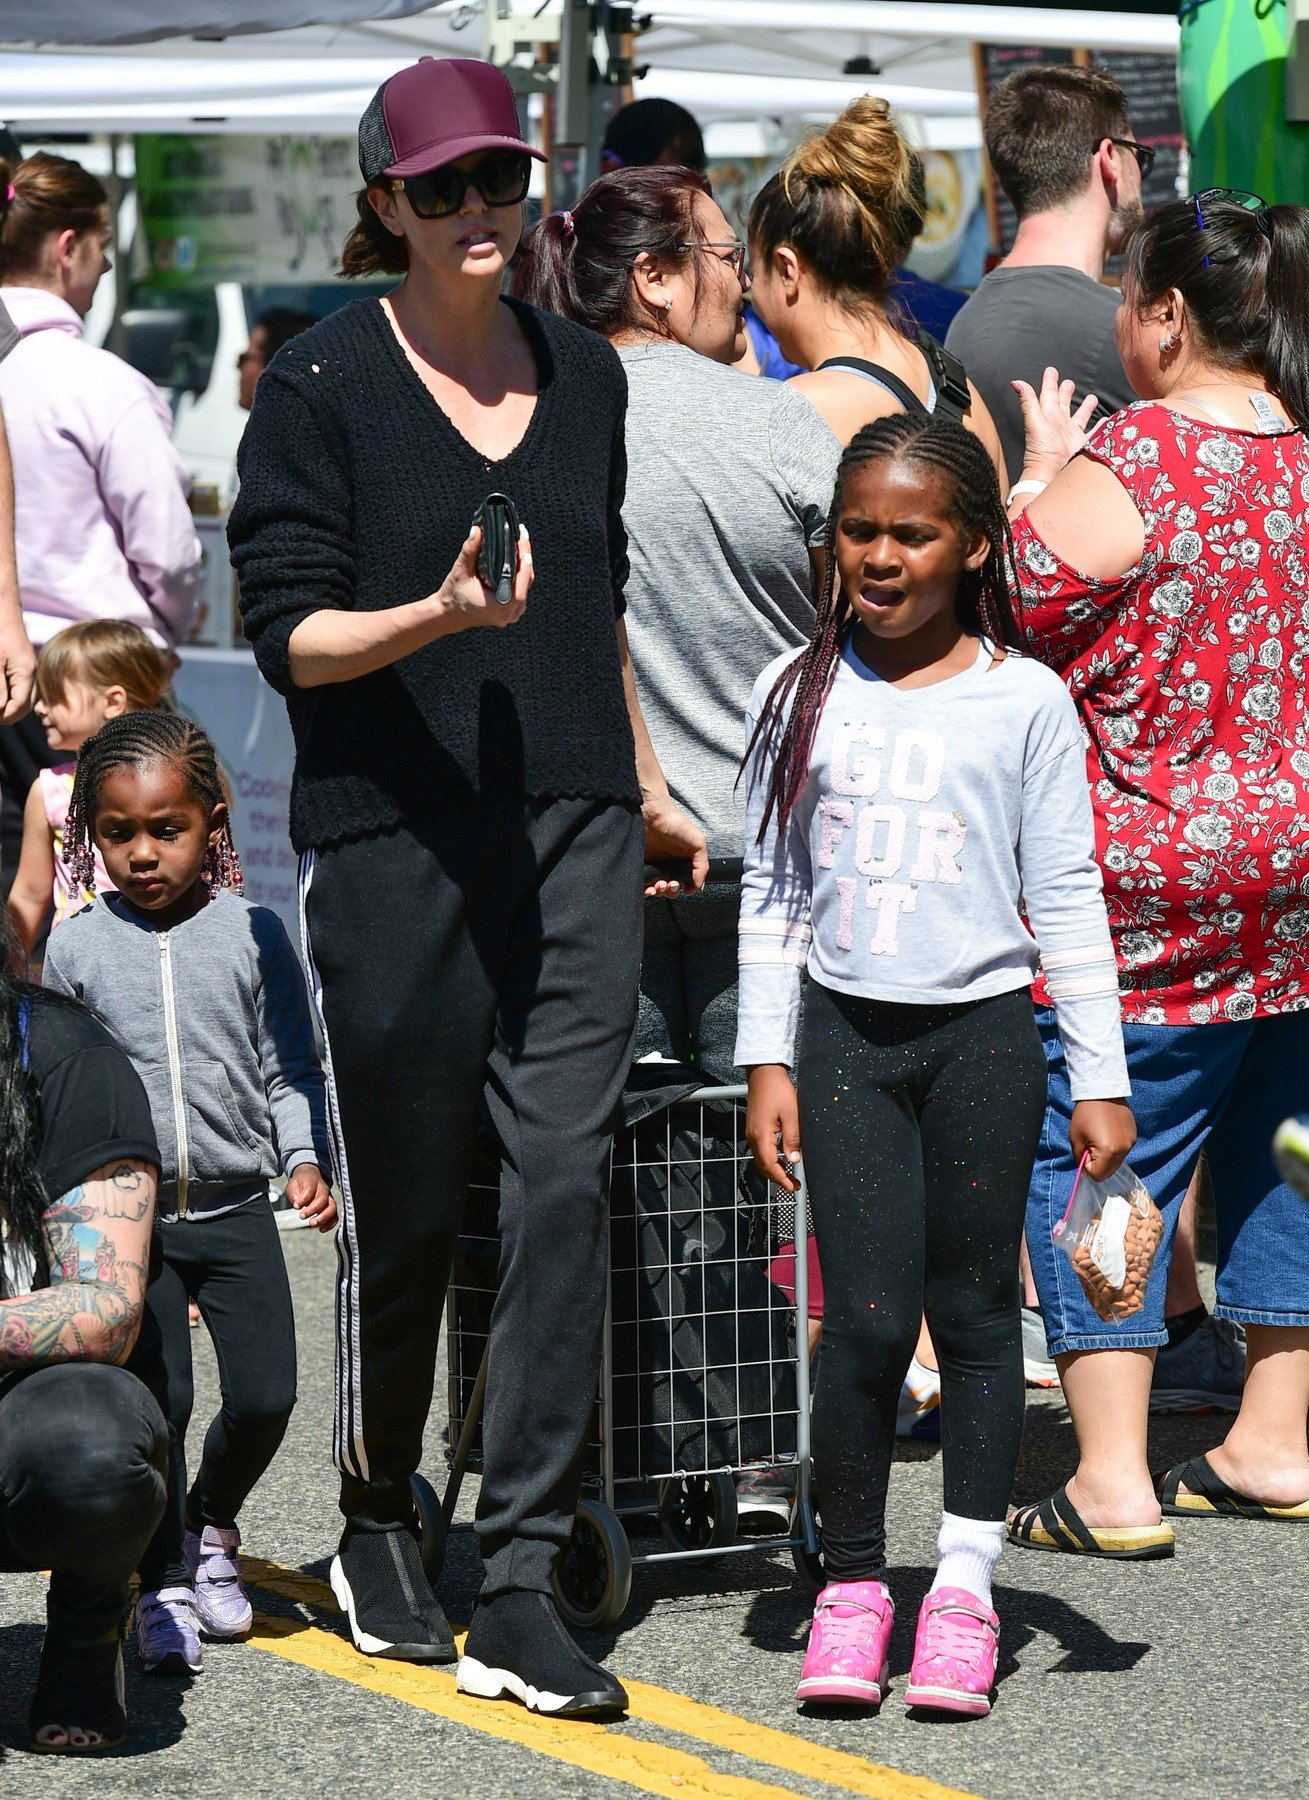 Charlize Theron is seen with daughters Jackson and August in Los Angeles, California. ***SPECIAL INSTRUCTIONS*** Please pixelate children's faces before publication.***. 31 Mar 2019, Image: 423460159, License: Rights-managed, Restrictions: World Rights, Model Release: no, Credit line: Profimedia, Mega Agency